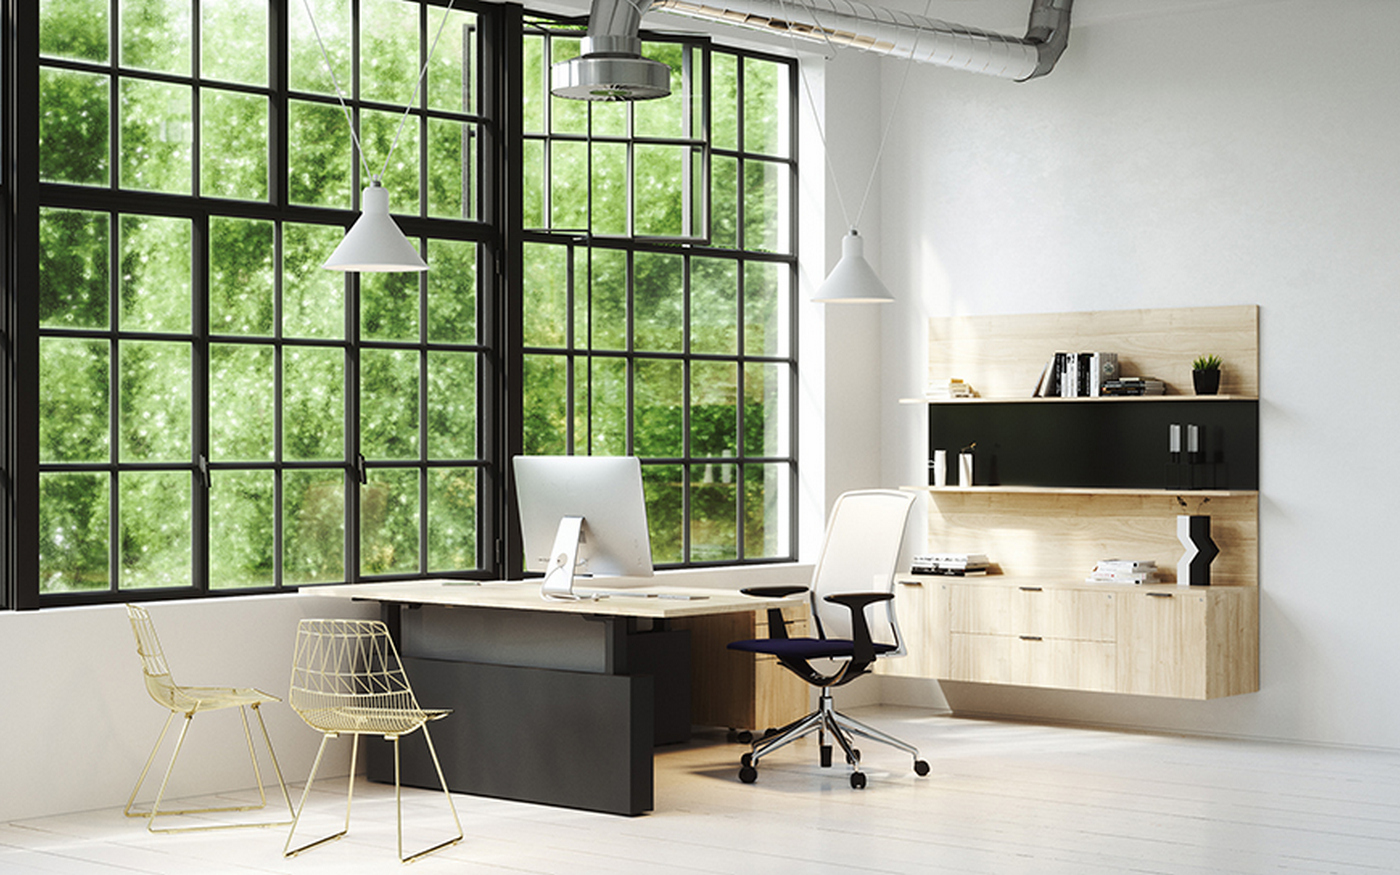 Nolita Executive Studio Office 3.0